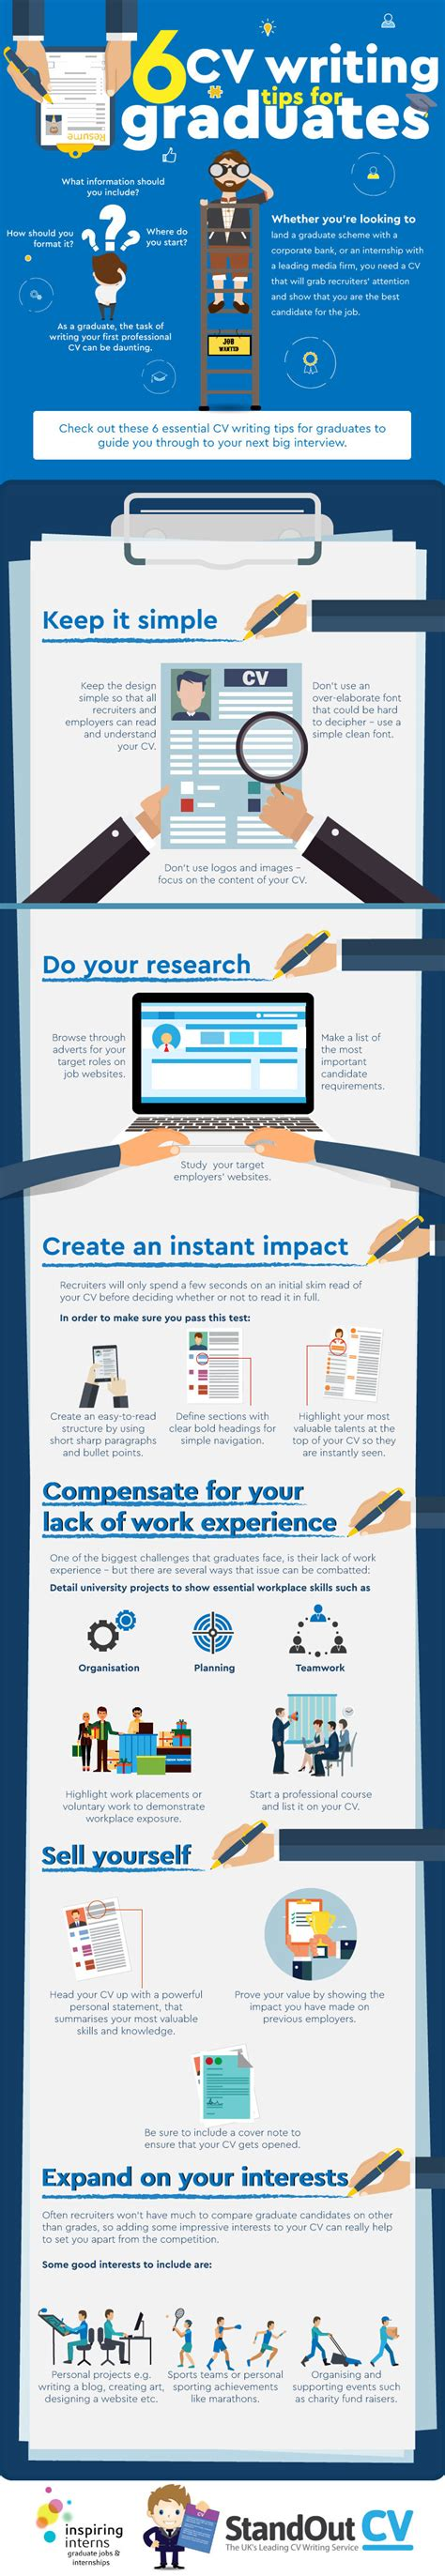 Cv Writing Tips by 6 Cv Writing Tips For Graduates Infographic Best